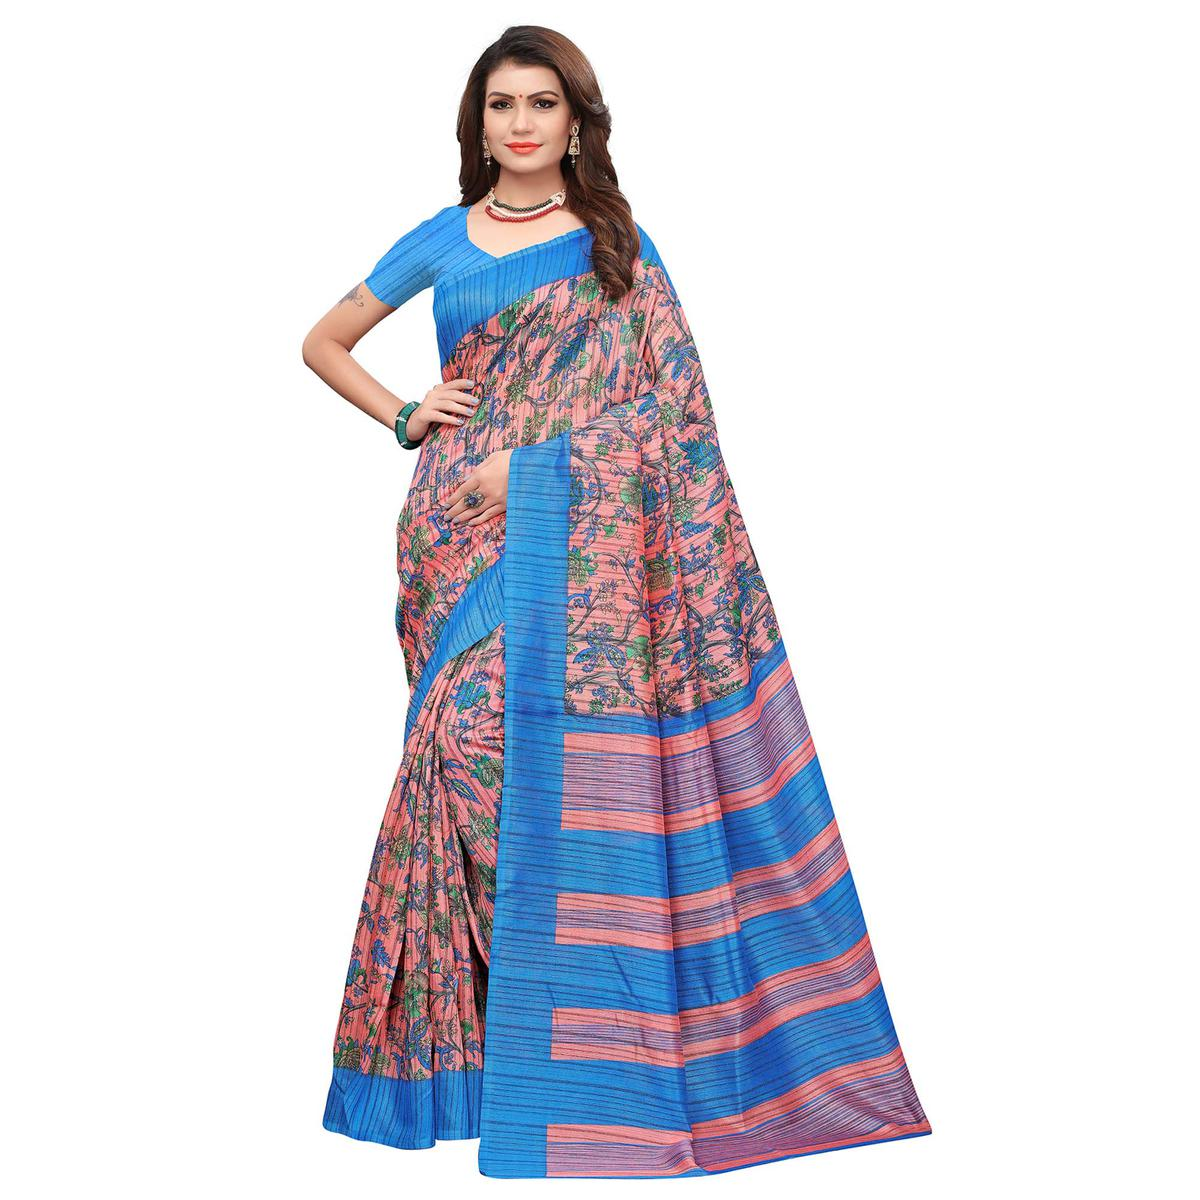 Ravishing Pink-Sky Blue Colored Casual Printed Art Silk Saree